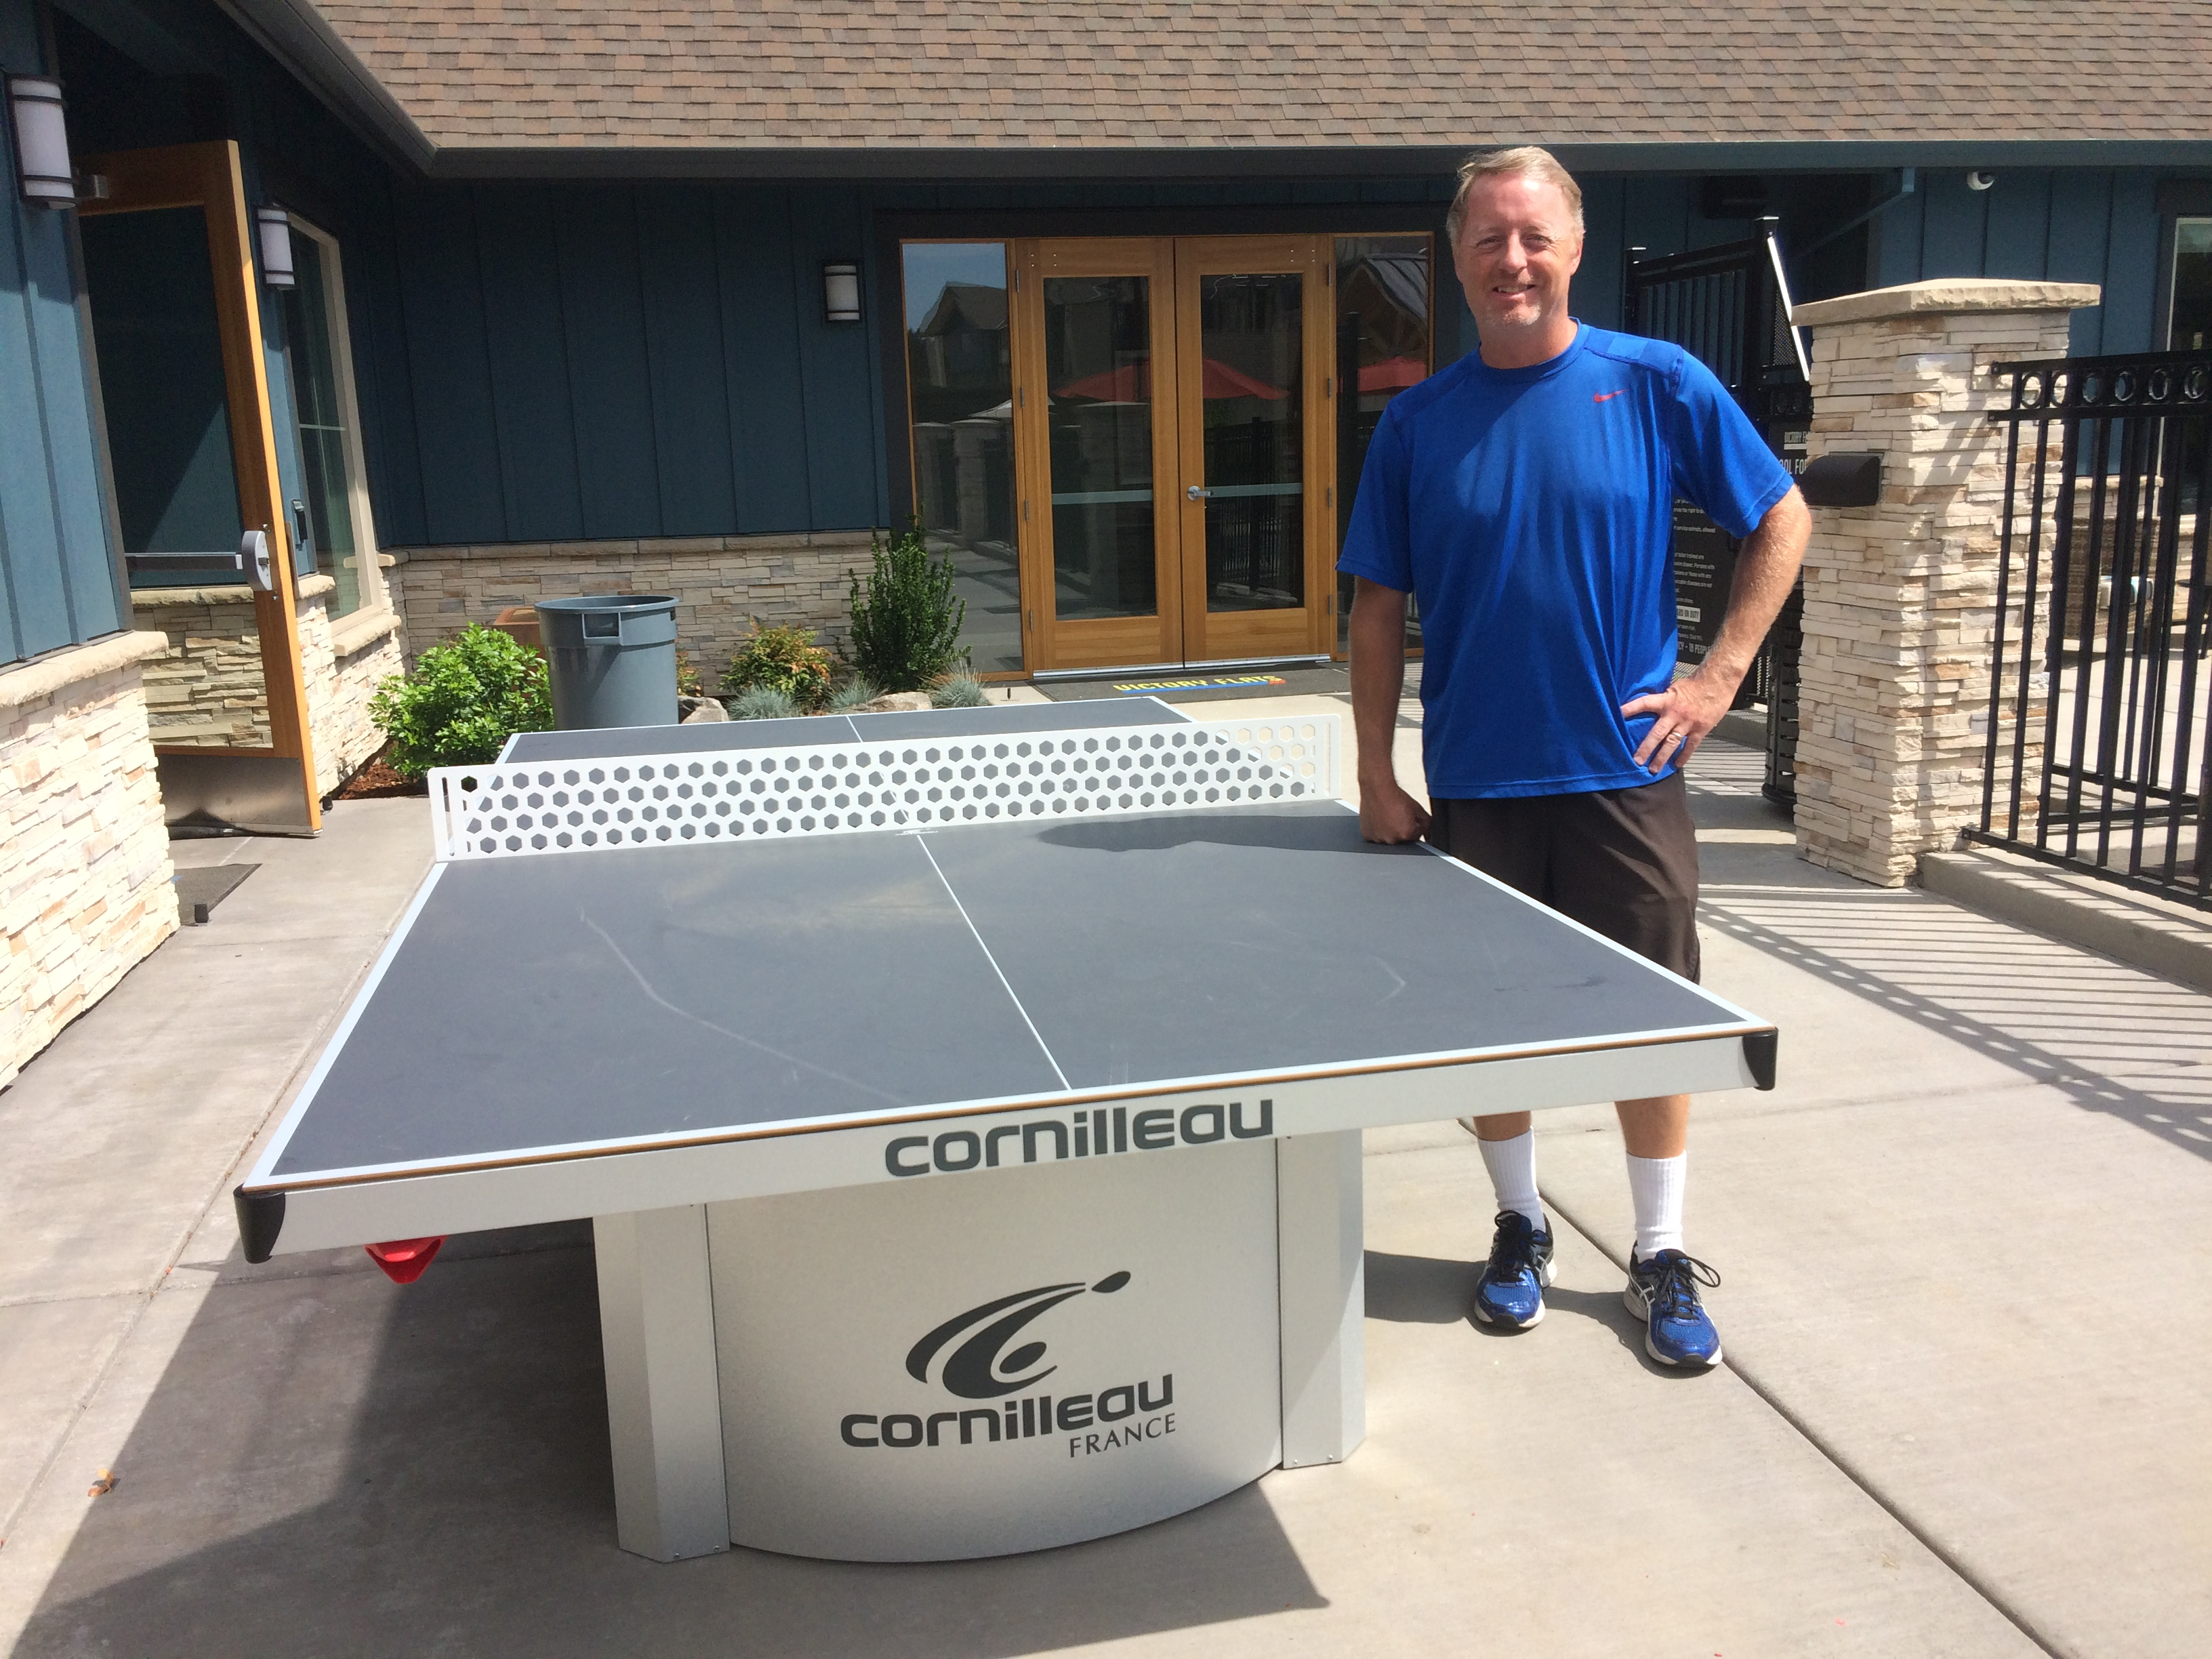 Cornilleau 510 pro outdoor table review - Table ping pong cornilleau outdoor ...